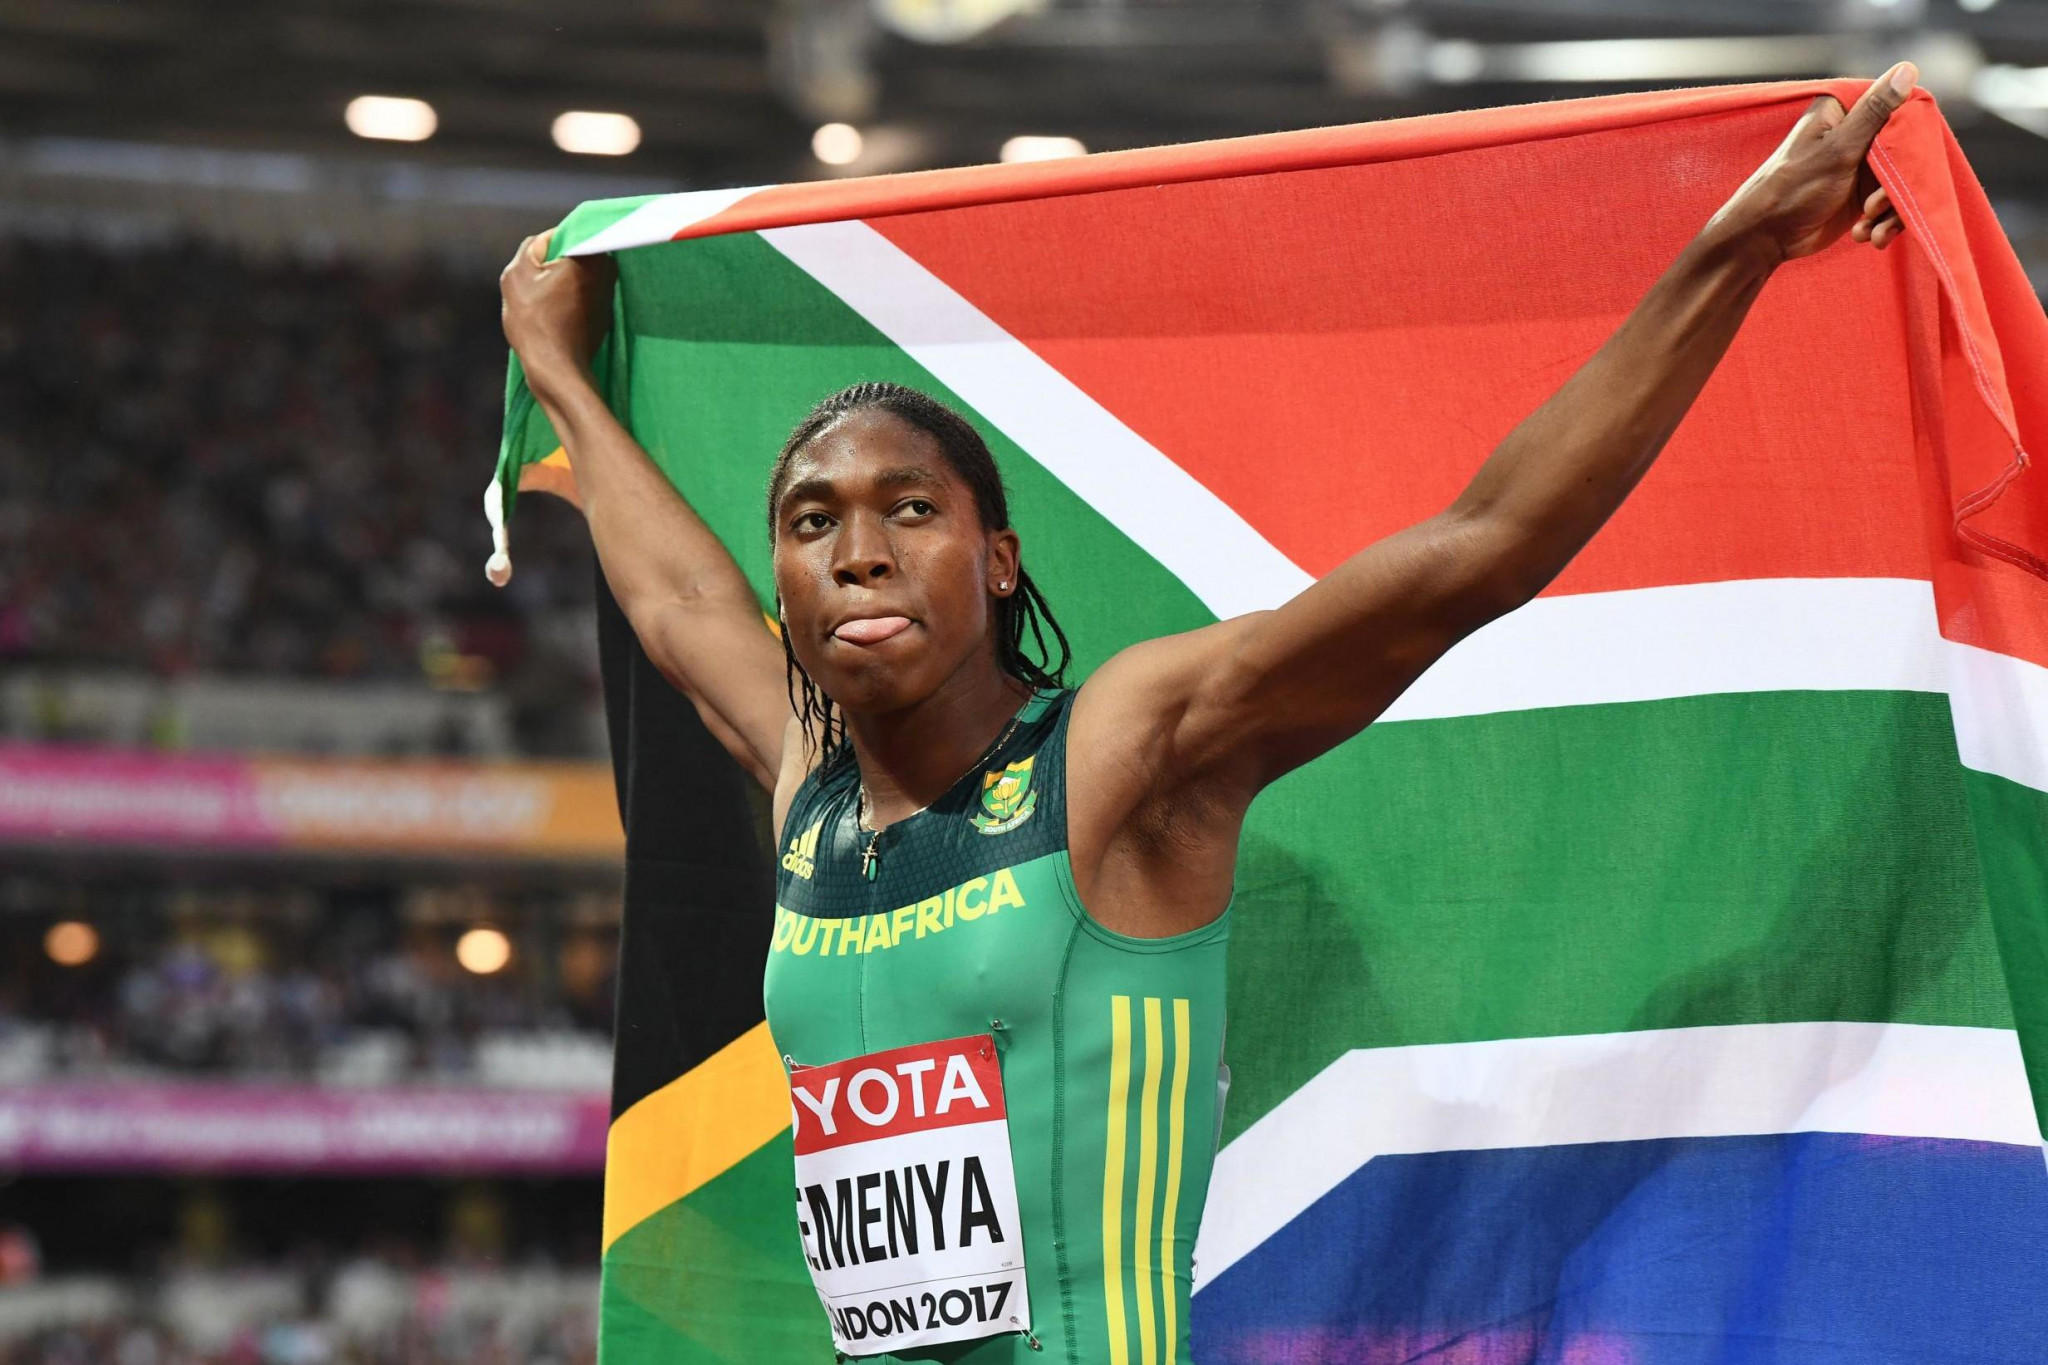 Athletics South Africa Senior Championships brought forward for Gold Coast 2018